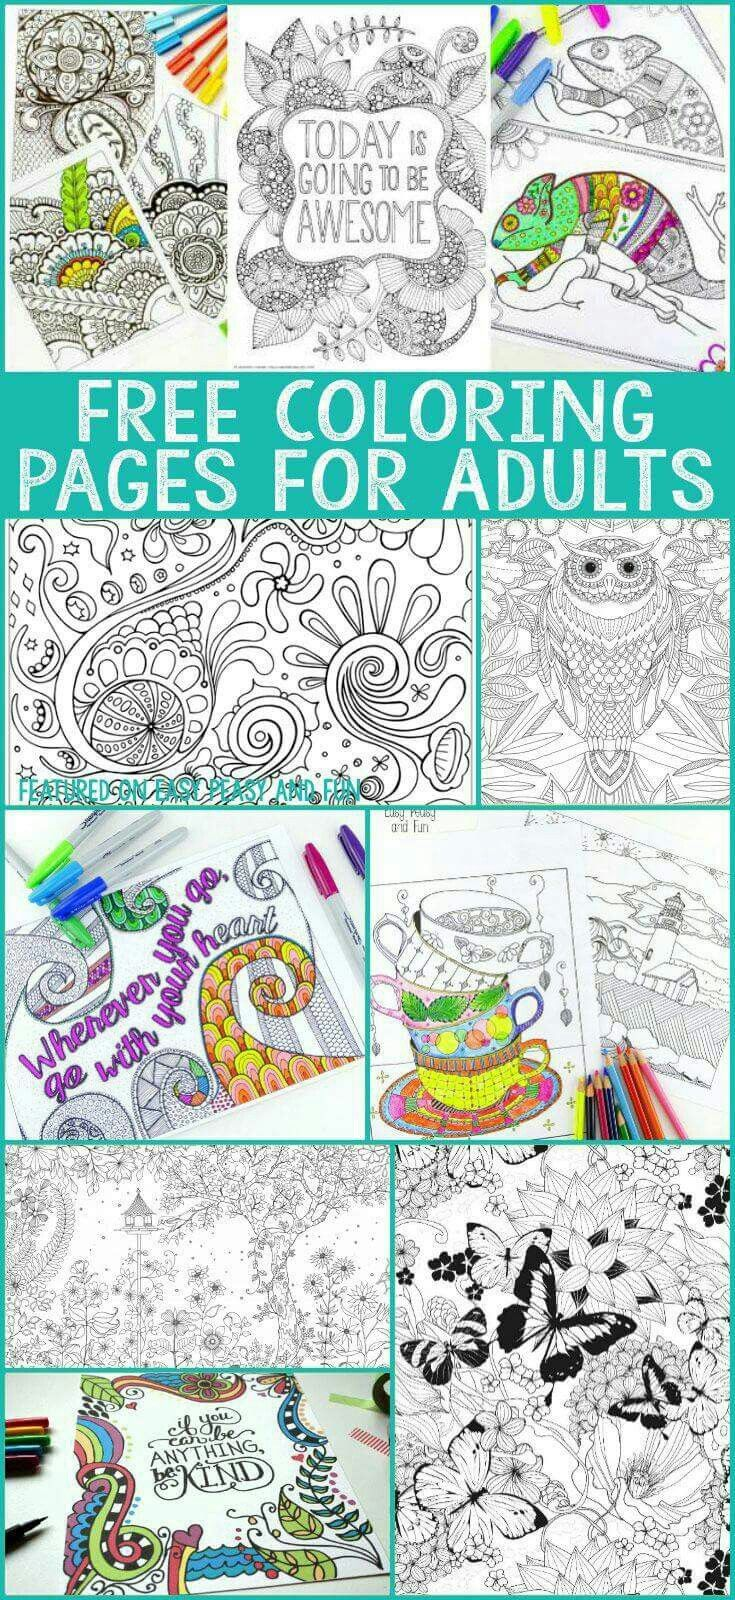 Coloring pages for down syndrome adults - Free Coloring Pages For Adults Easypeasyandfun